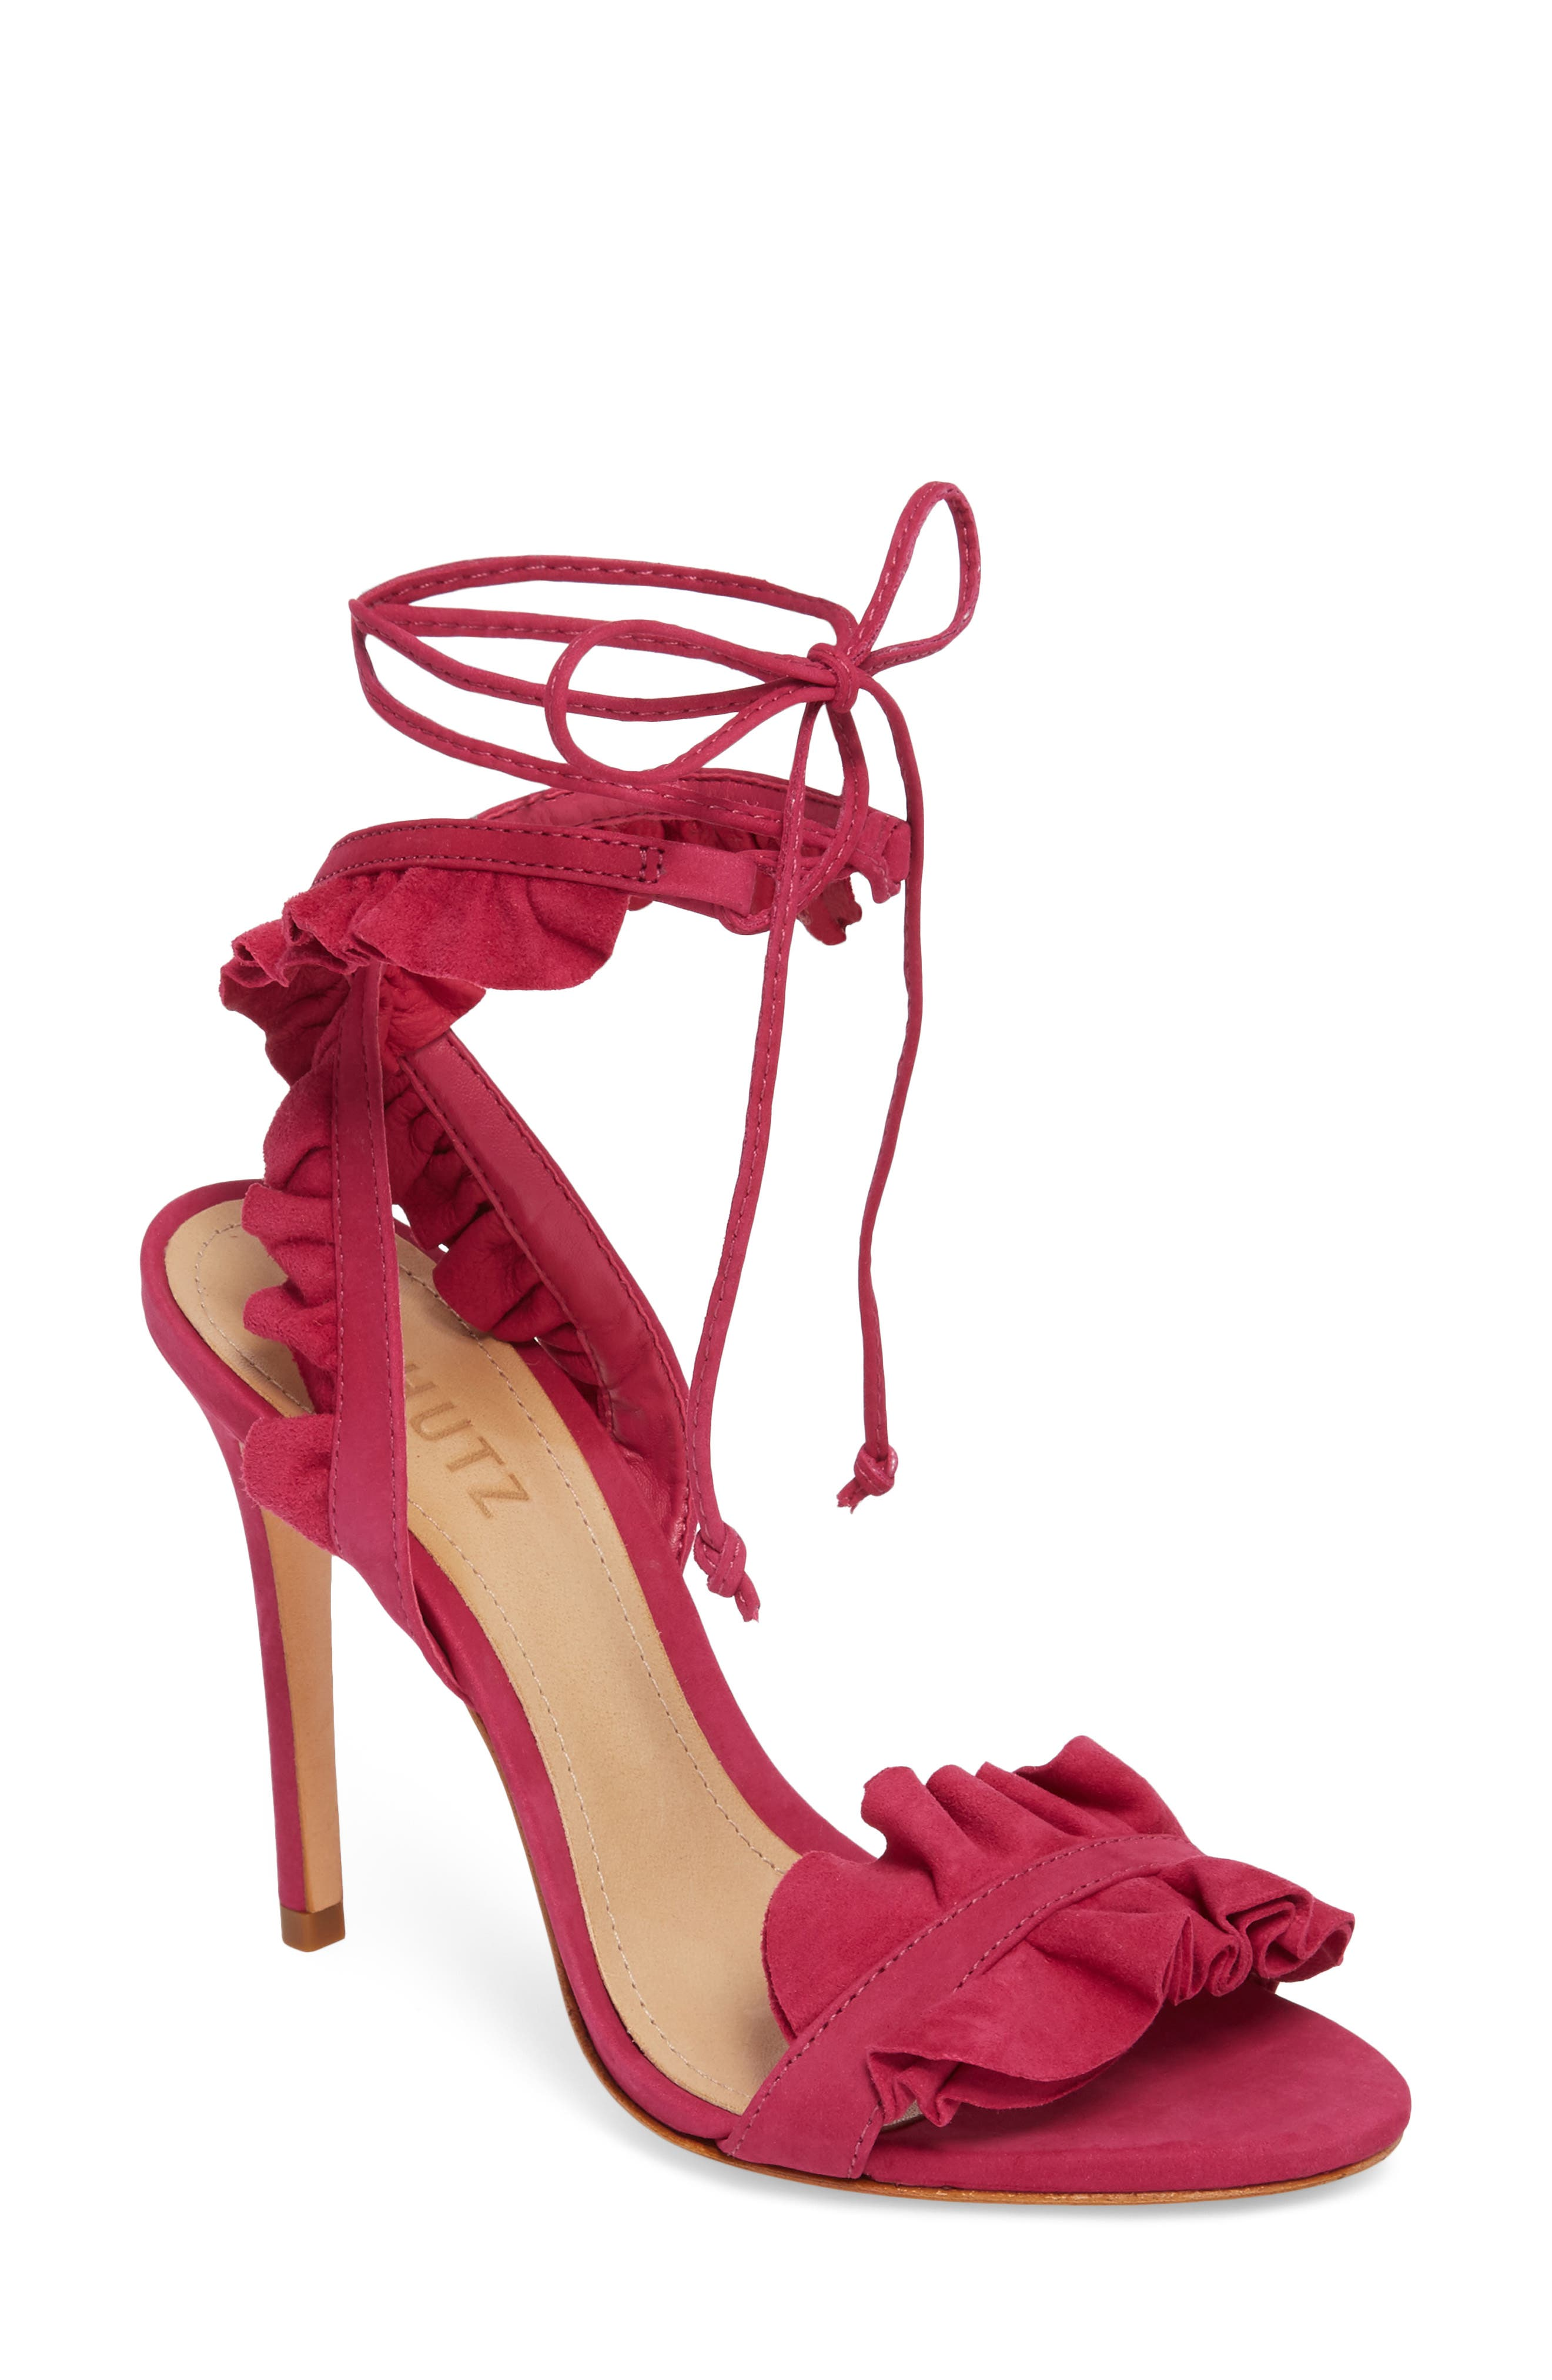 Irem Lace-UP Sandal,                         Main,                         color, Bright Rose Nubuck Leather